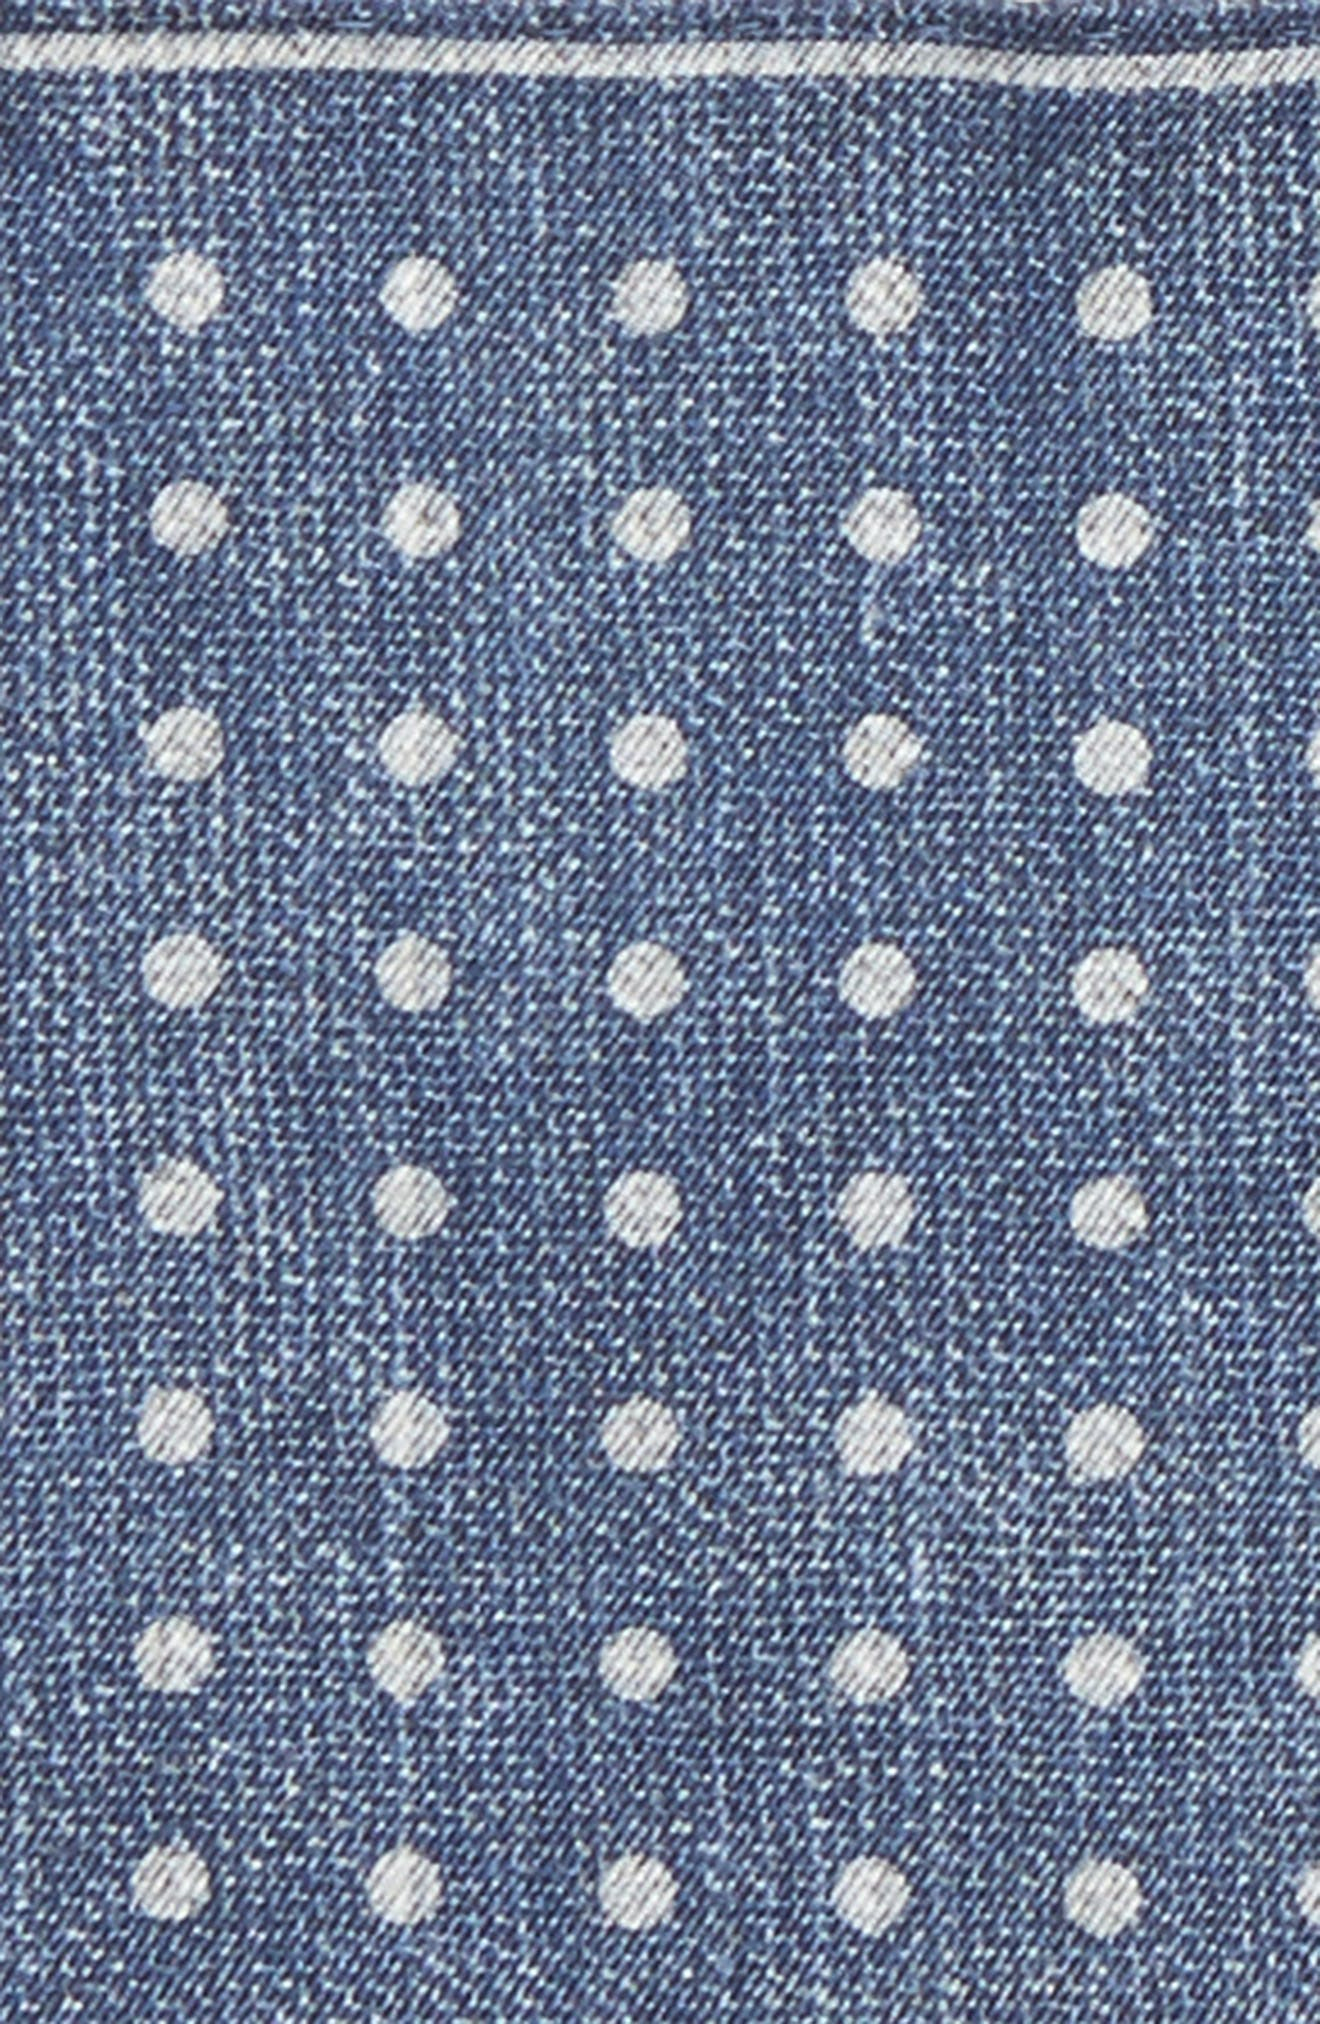 Dot Silk Pocket Square,                             Alternate thumbnail 3, color,                             Blue